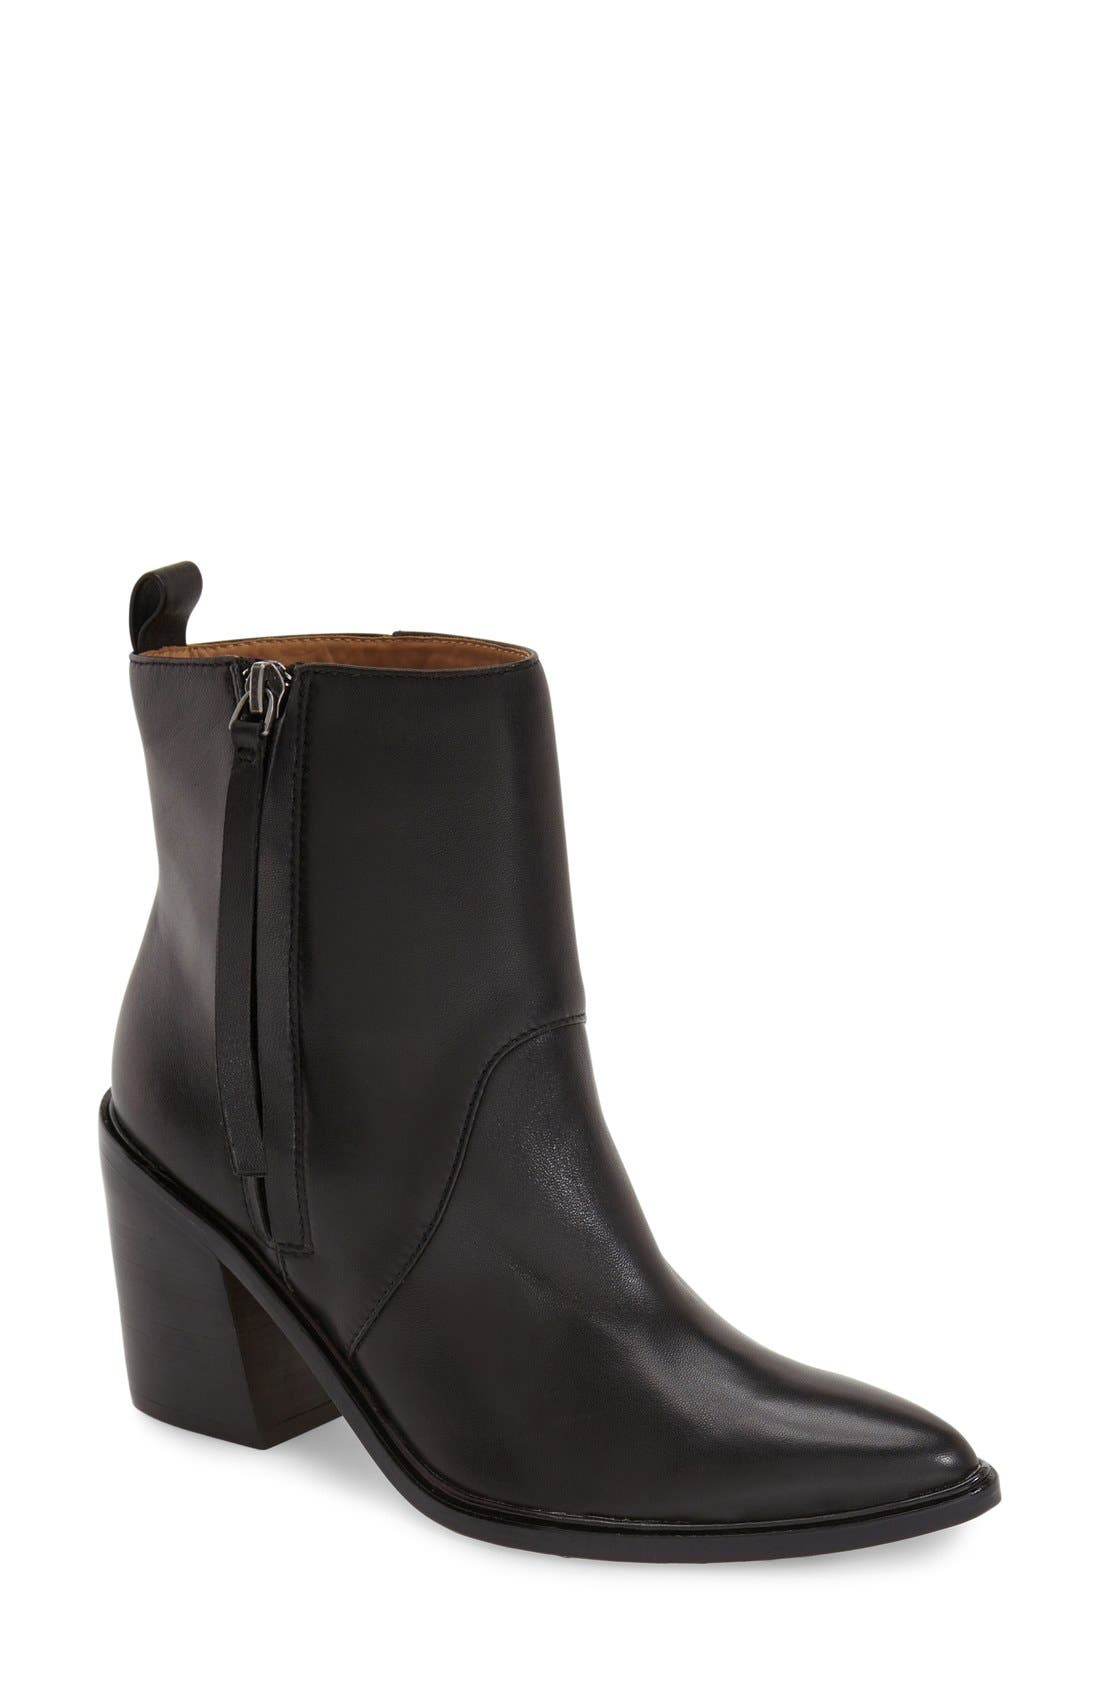 Main Image - Bettye Muller 'Troy' Pointy Toe Boot (Women)